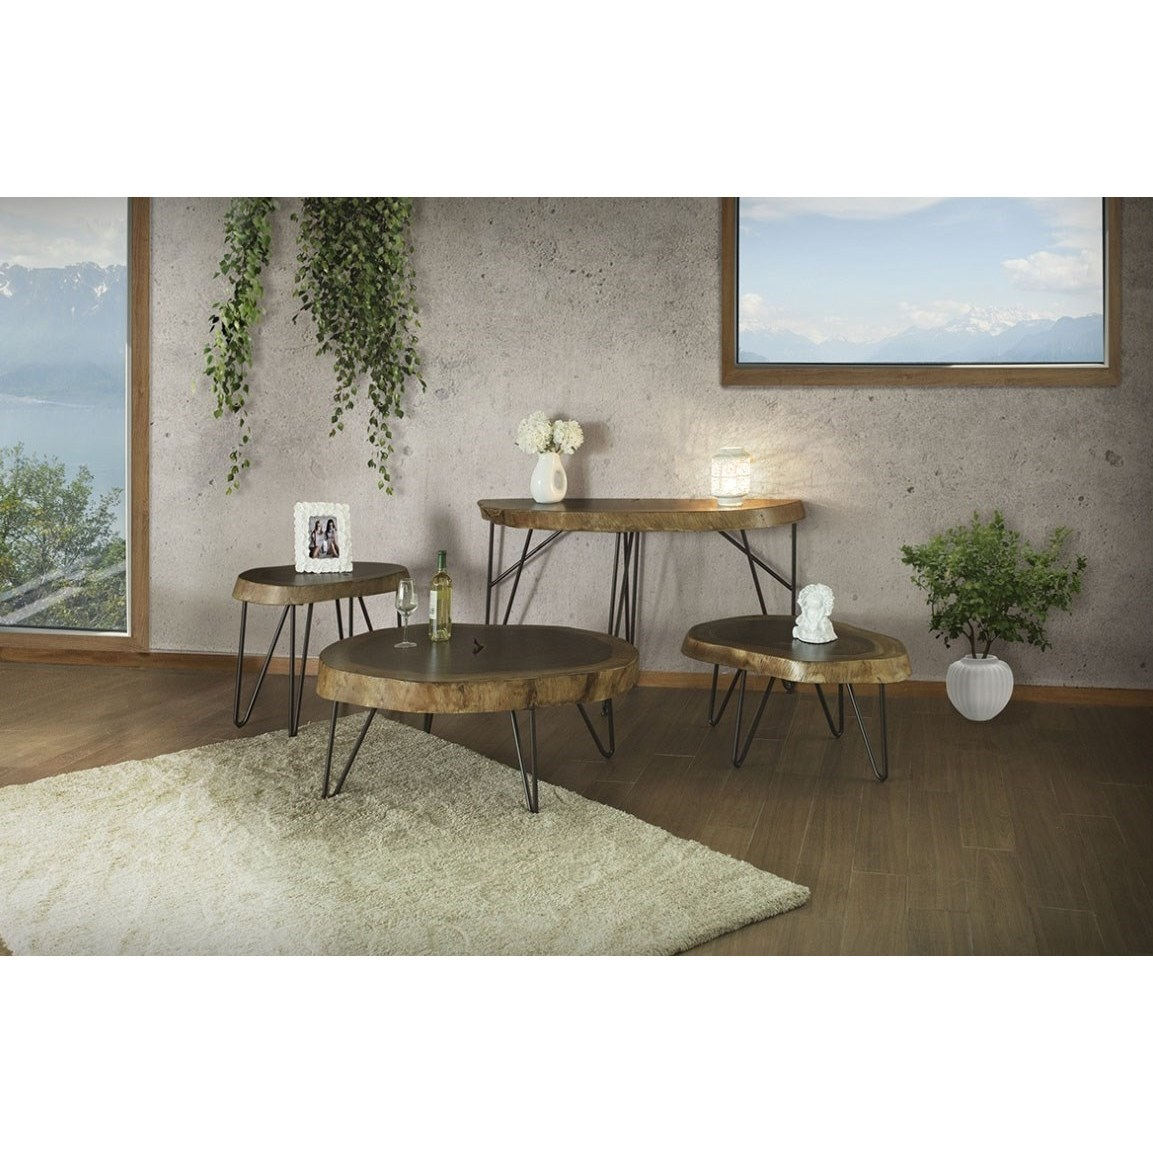 Vivo Occasional Table Group by International Furniture Direct at Furniture Superstore - Rochester, MN